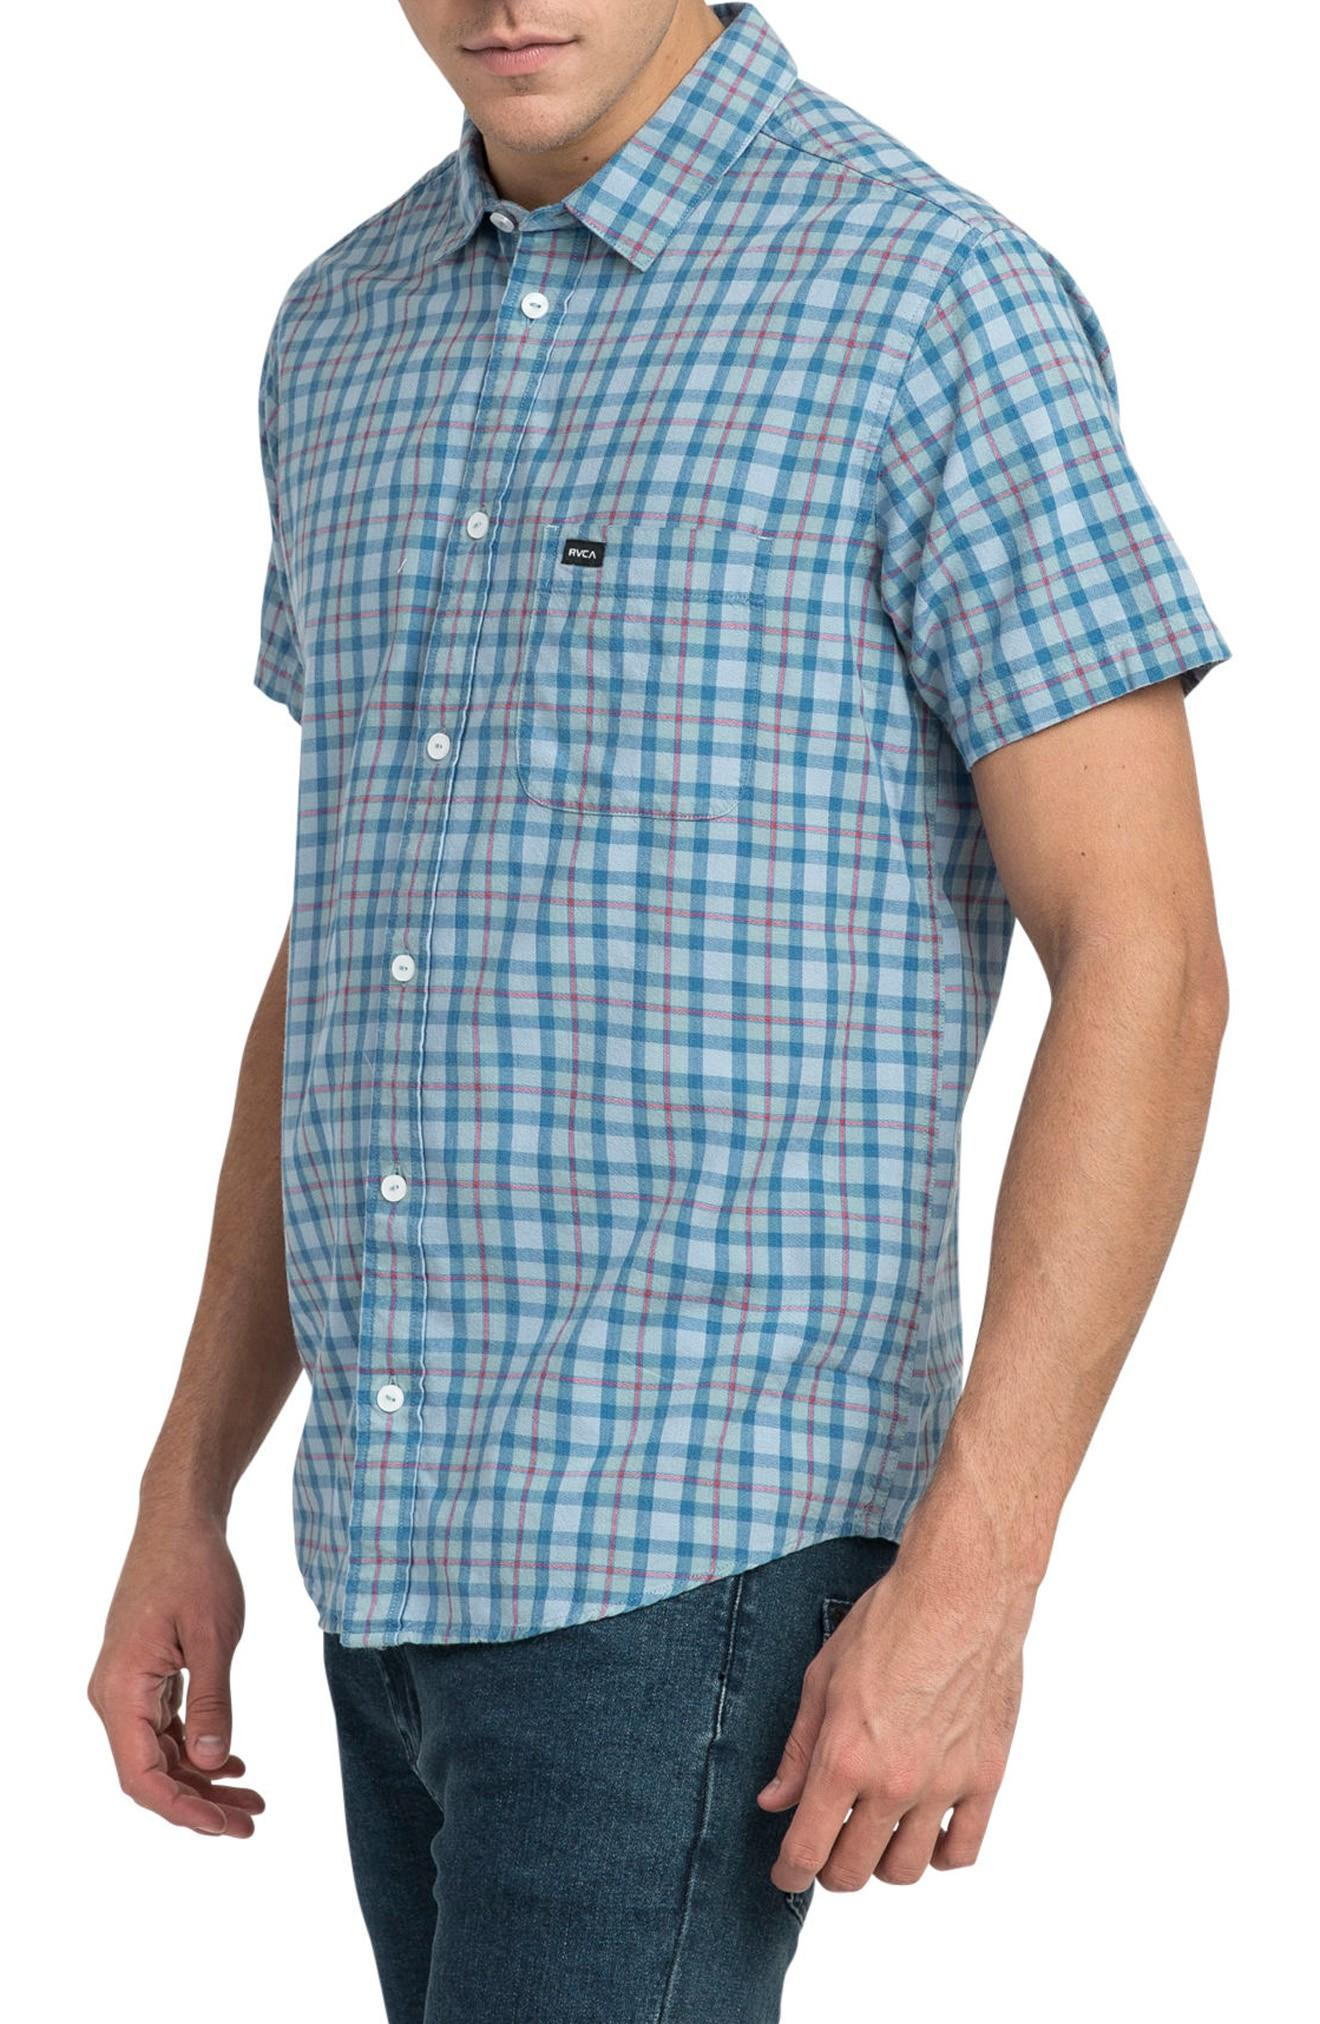 Rvca That'll Do Plaid Shirt In Baked Apple